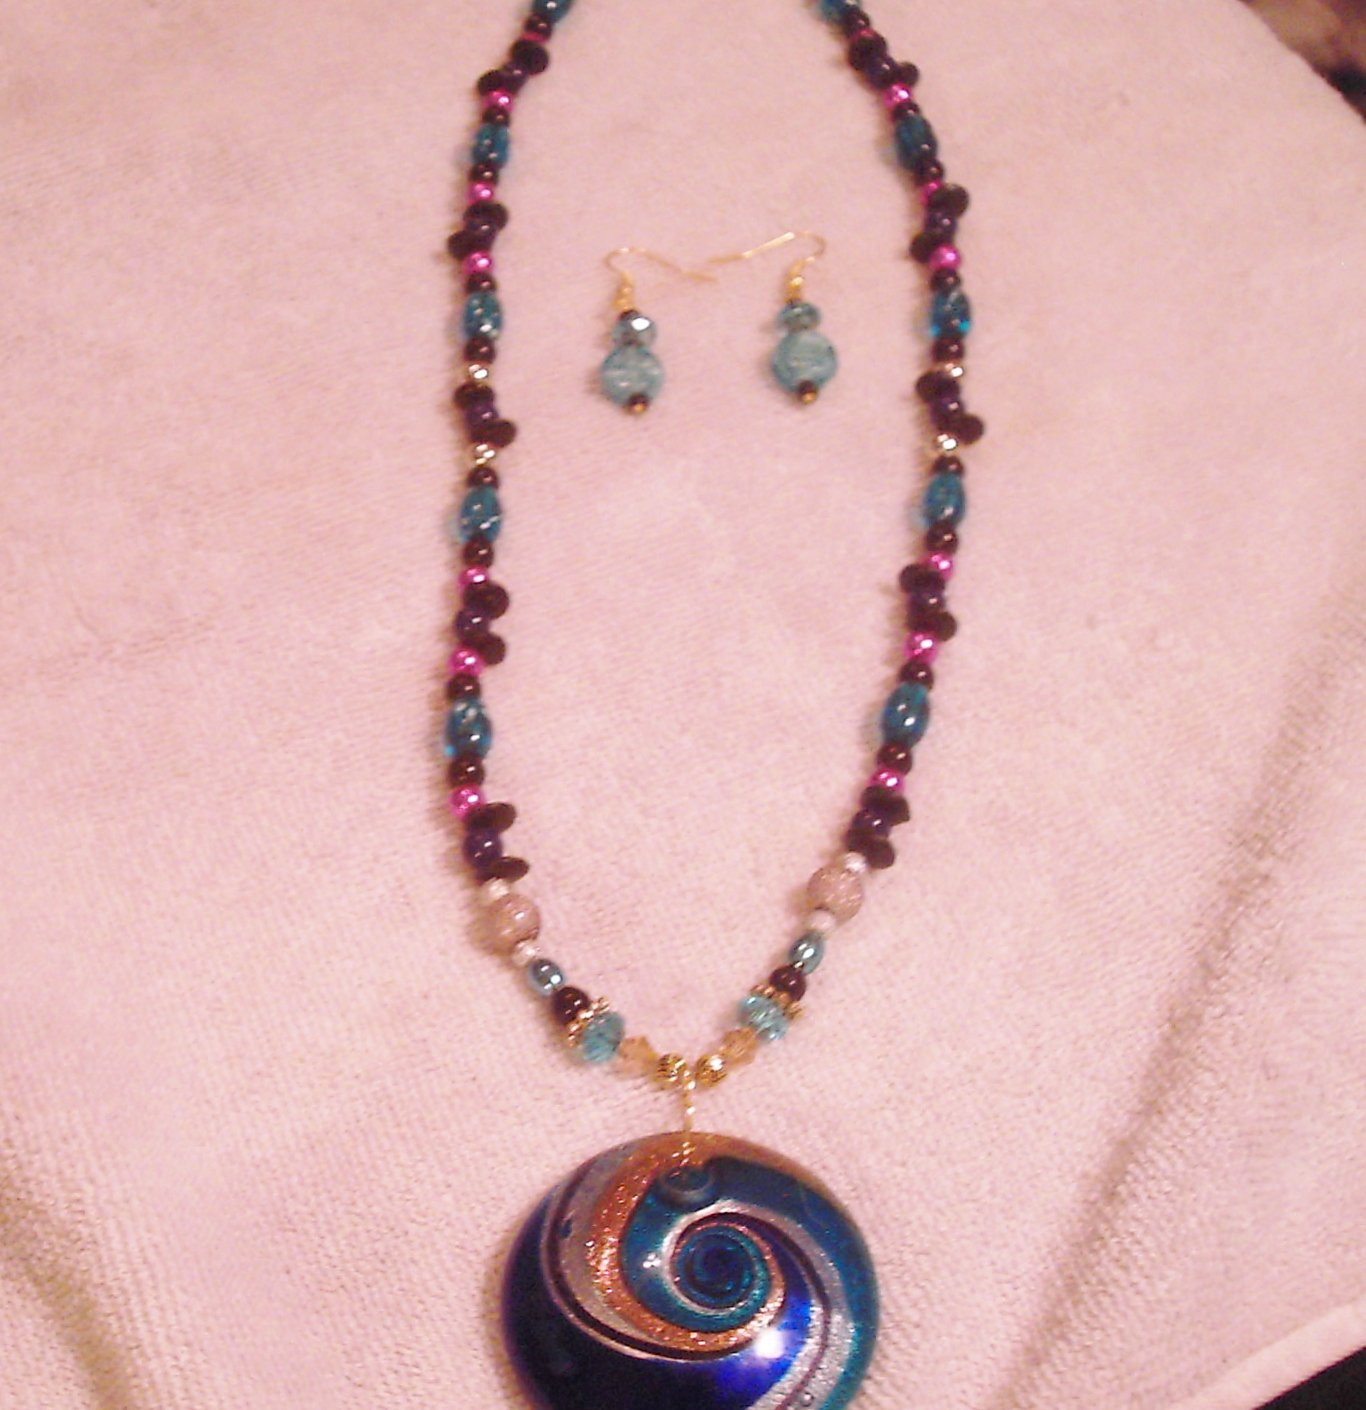 Handmade Swirl Necklace and Earrings Set